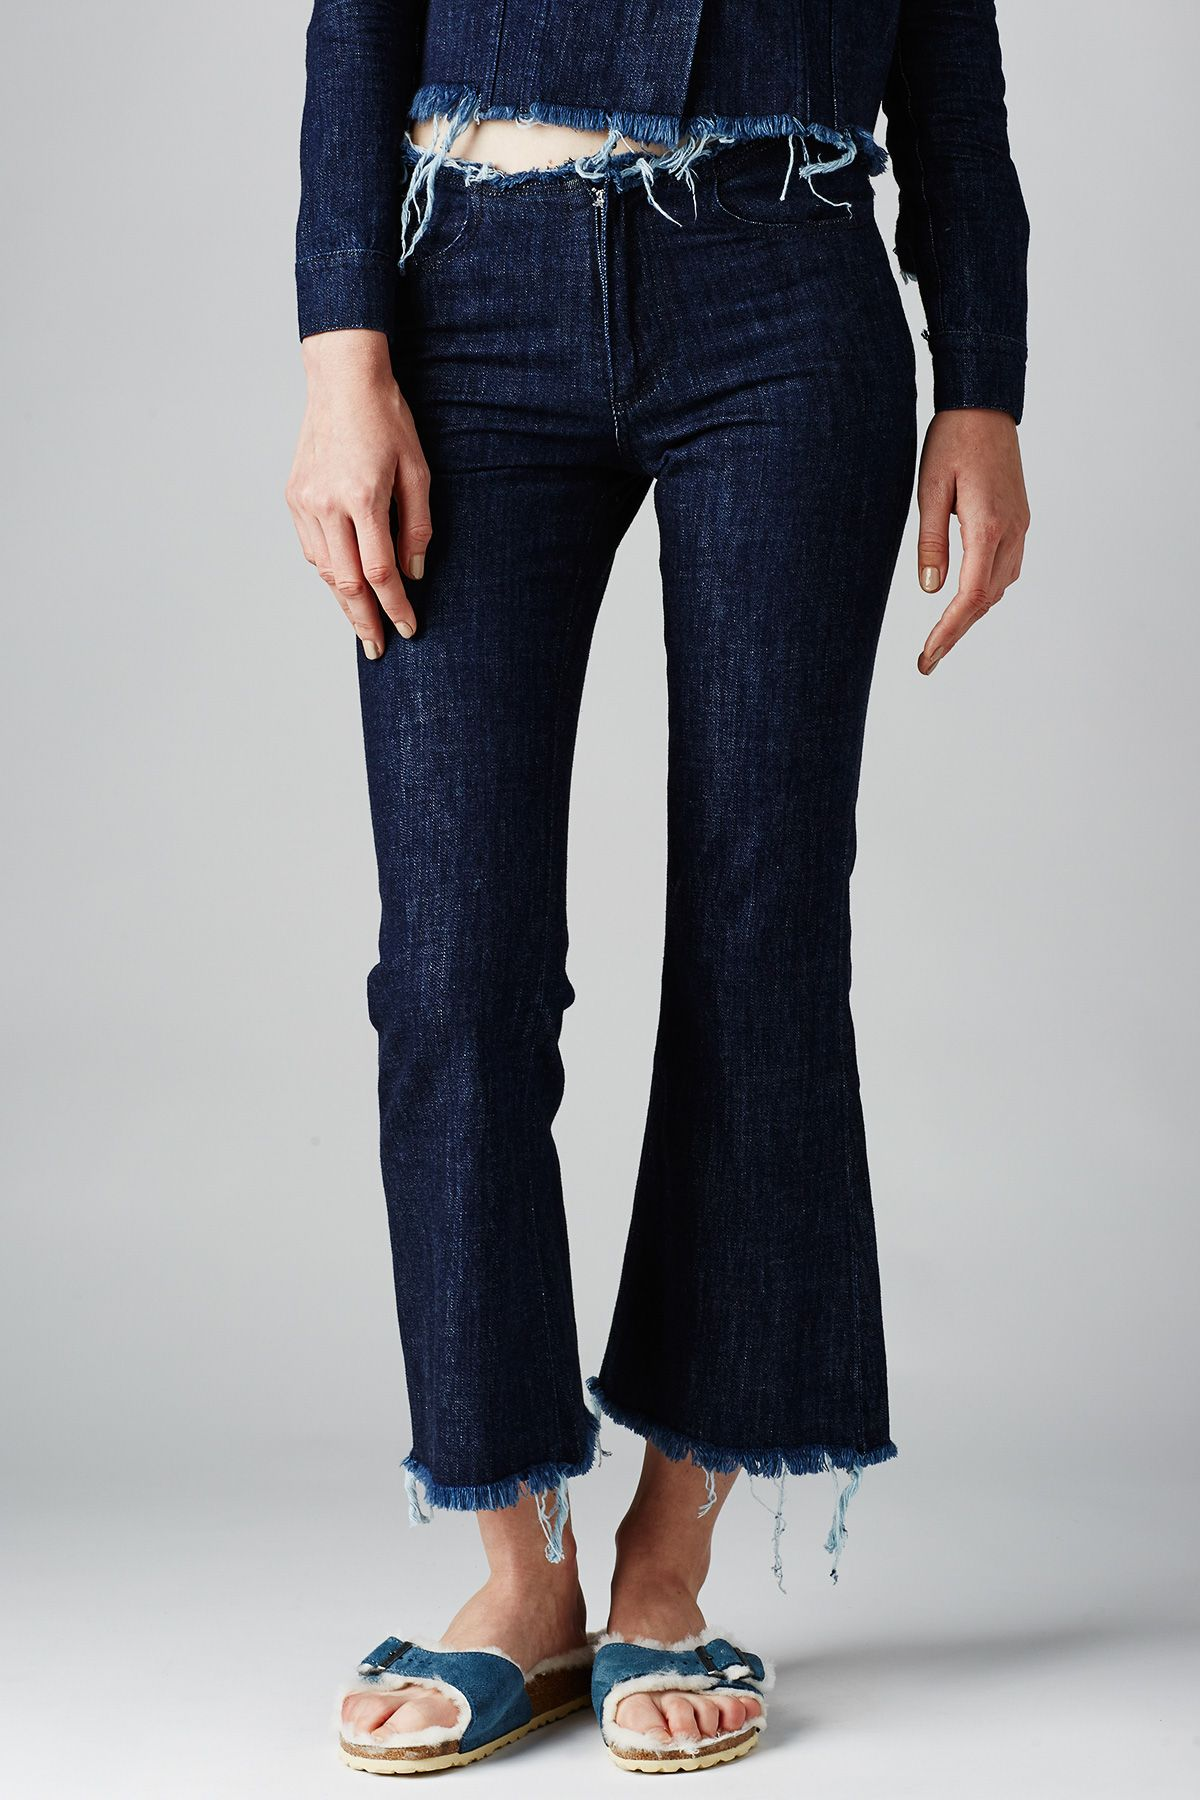 capri jeans Marques Almeida Cheap Sale Looking For CZSOqIo0